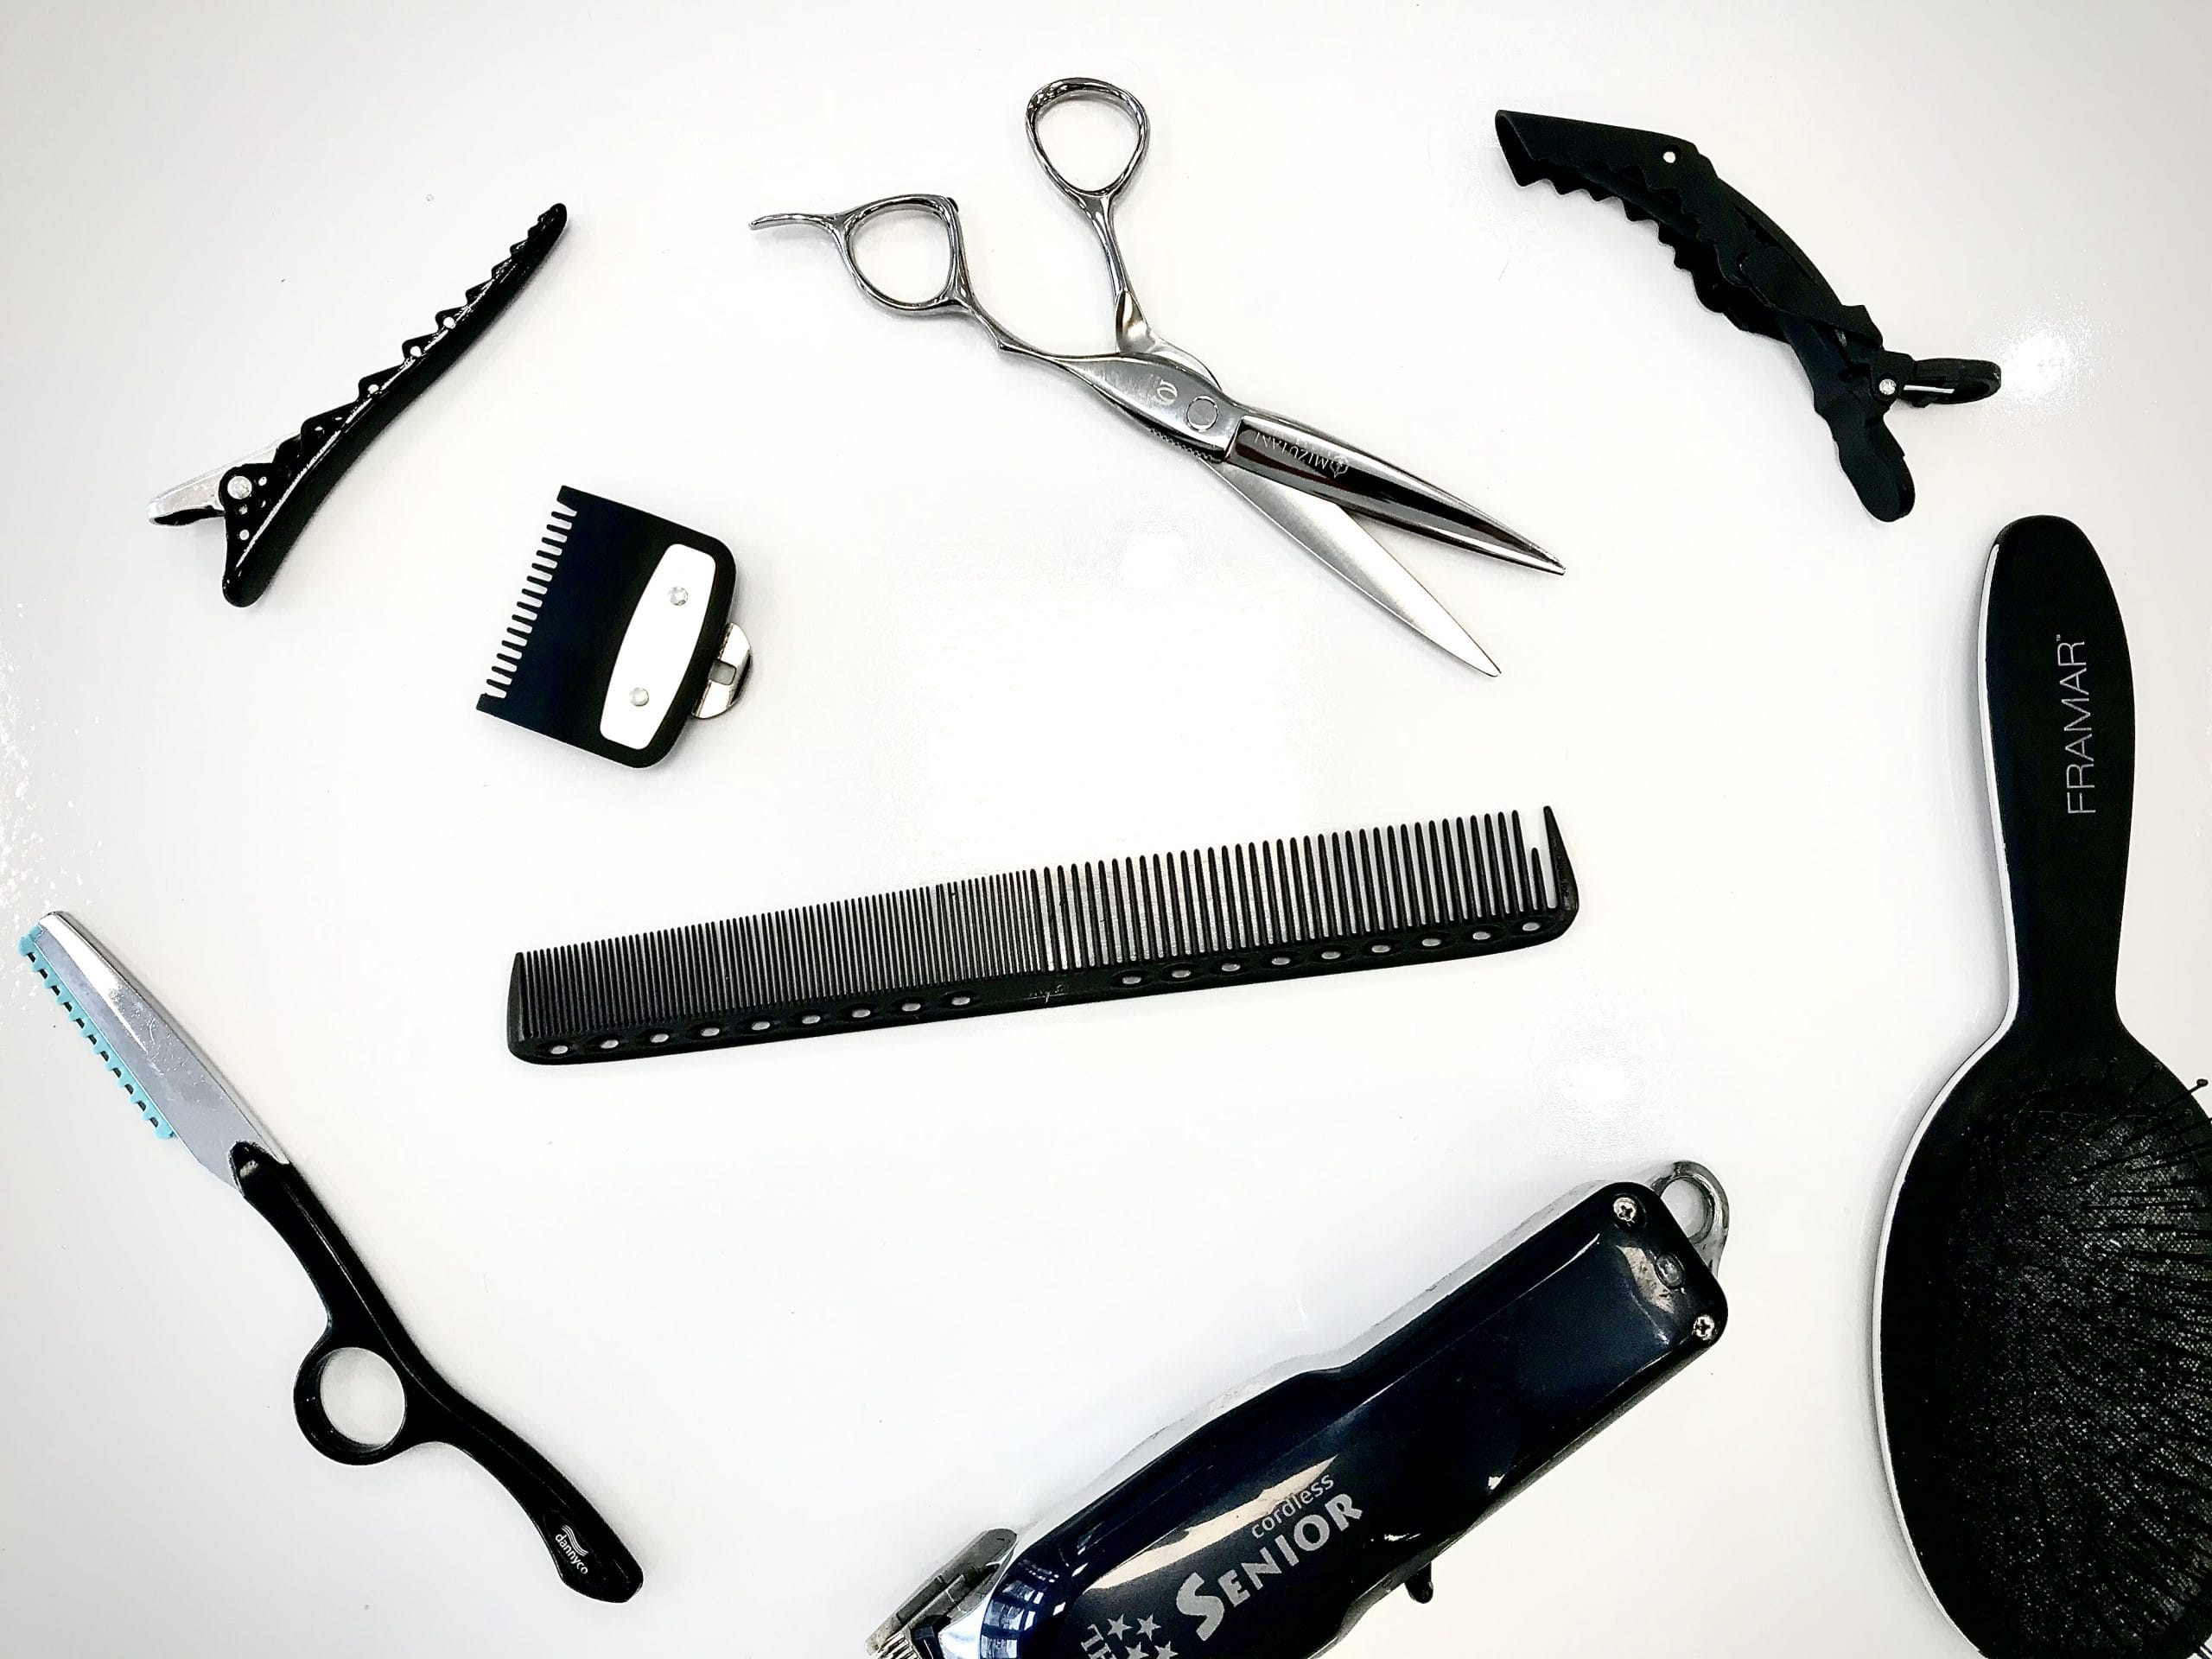 Hair styling tools laid out on table